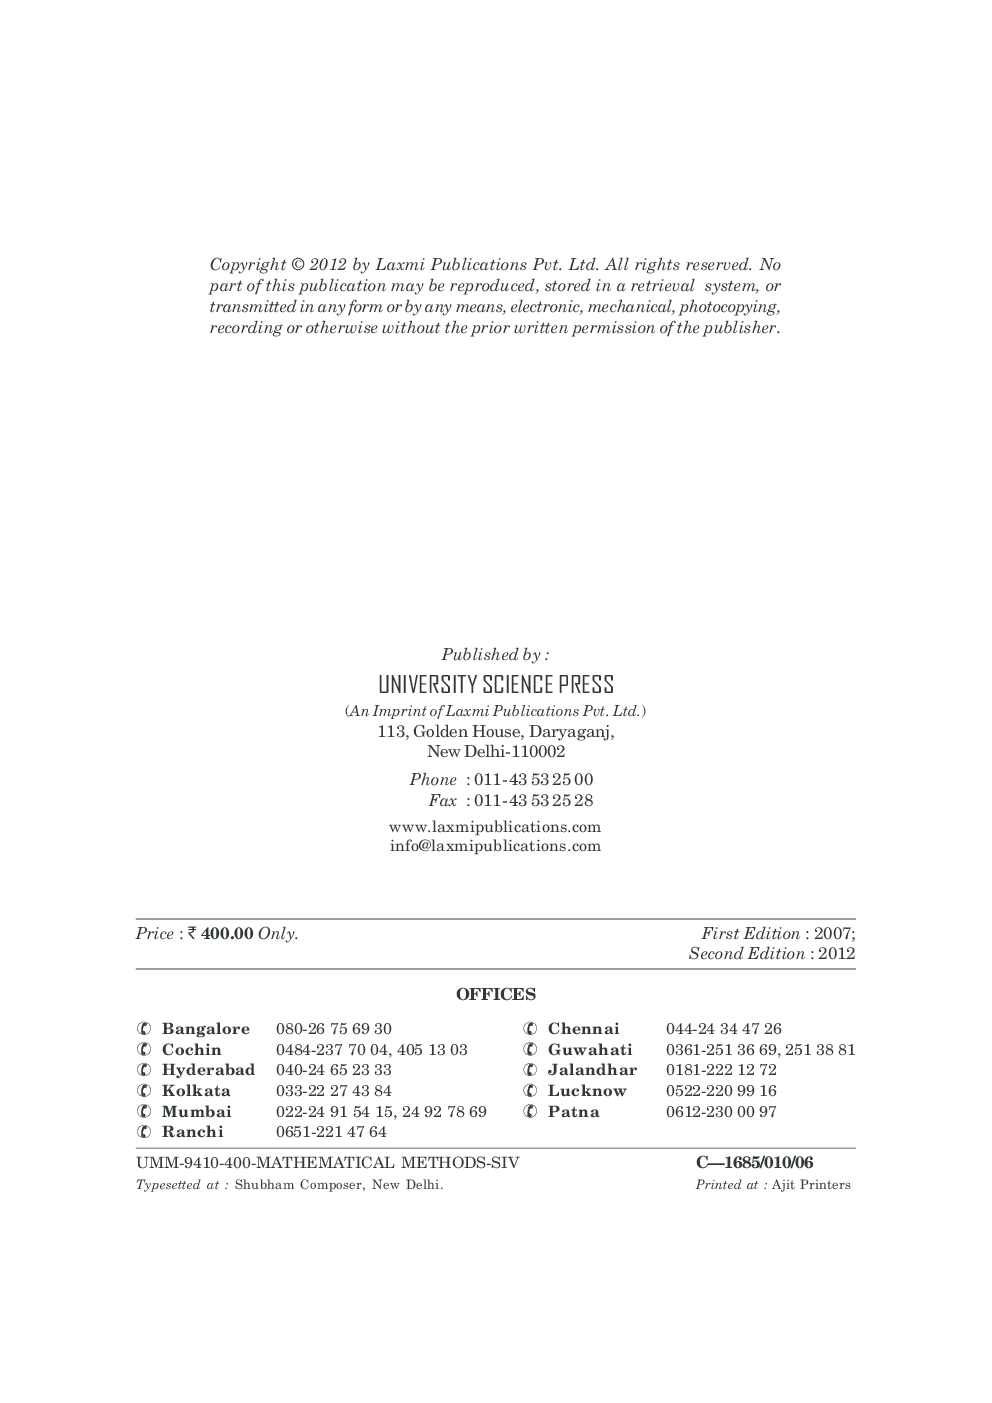 Mathematical Methods By Dr. S. Sivaiah - Page 3